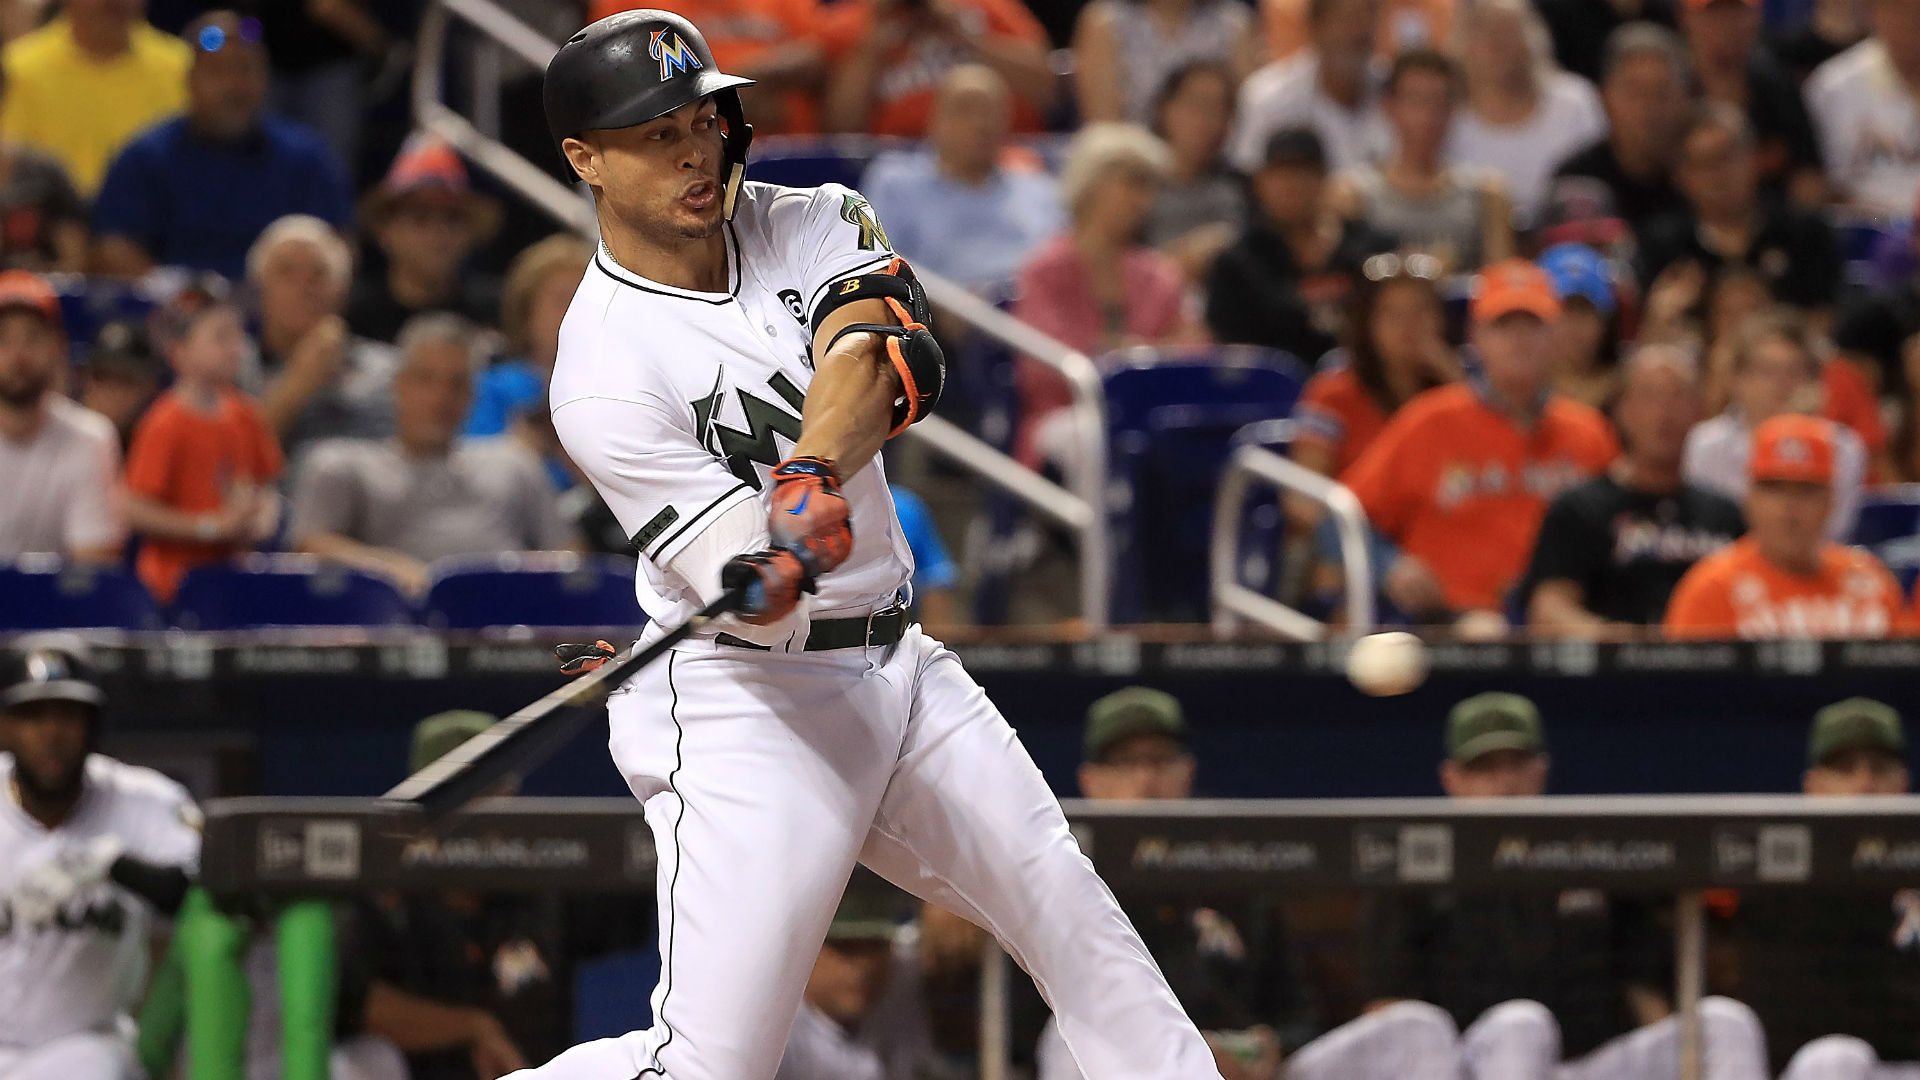 Ozuna gets some help in Marlins win over Phillies